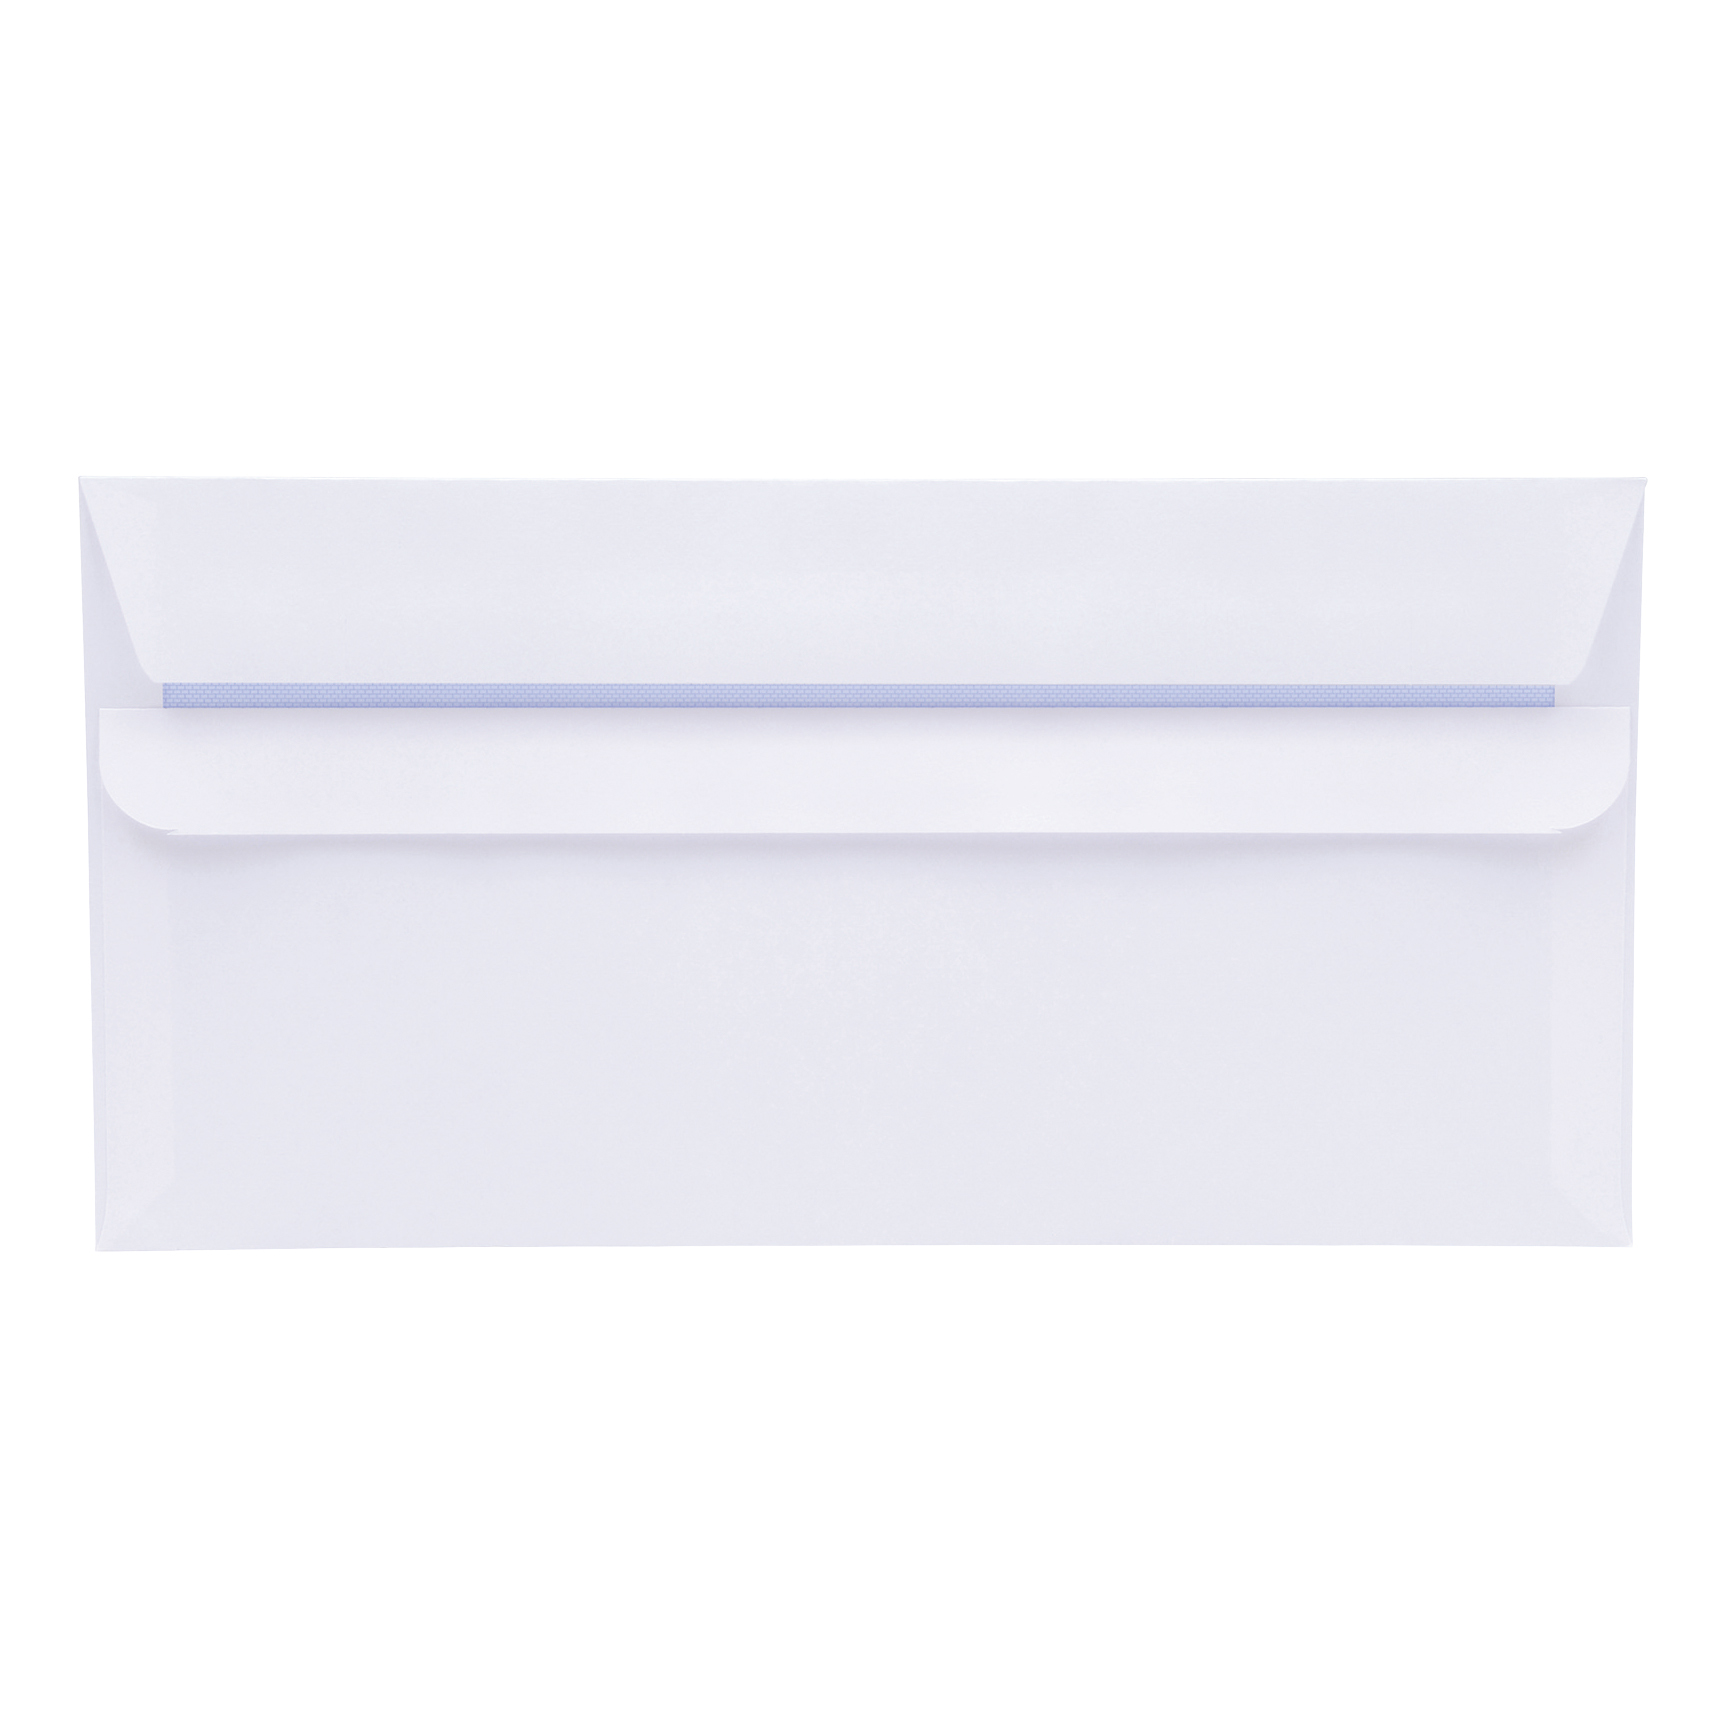 5 Star Office Envelopes PEFC Wallet Self Seal 80gsm DL 220x110mm White Retail Pack Pack 50